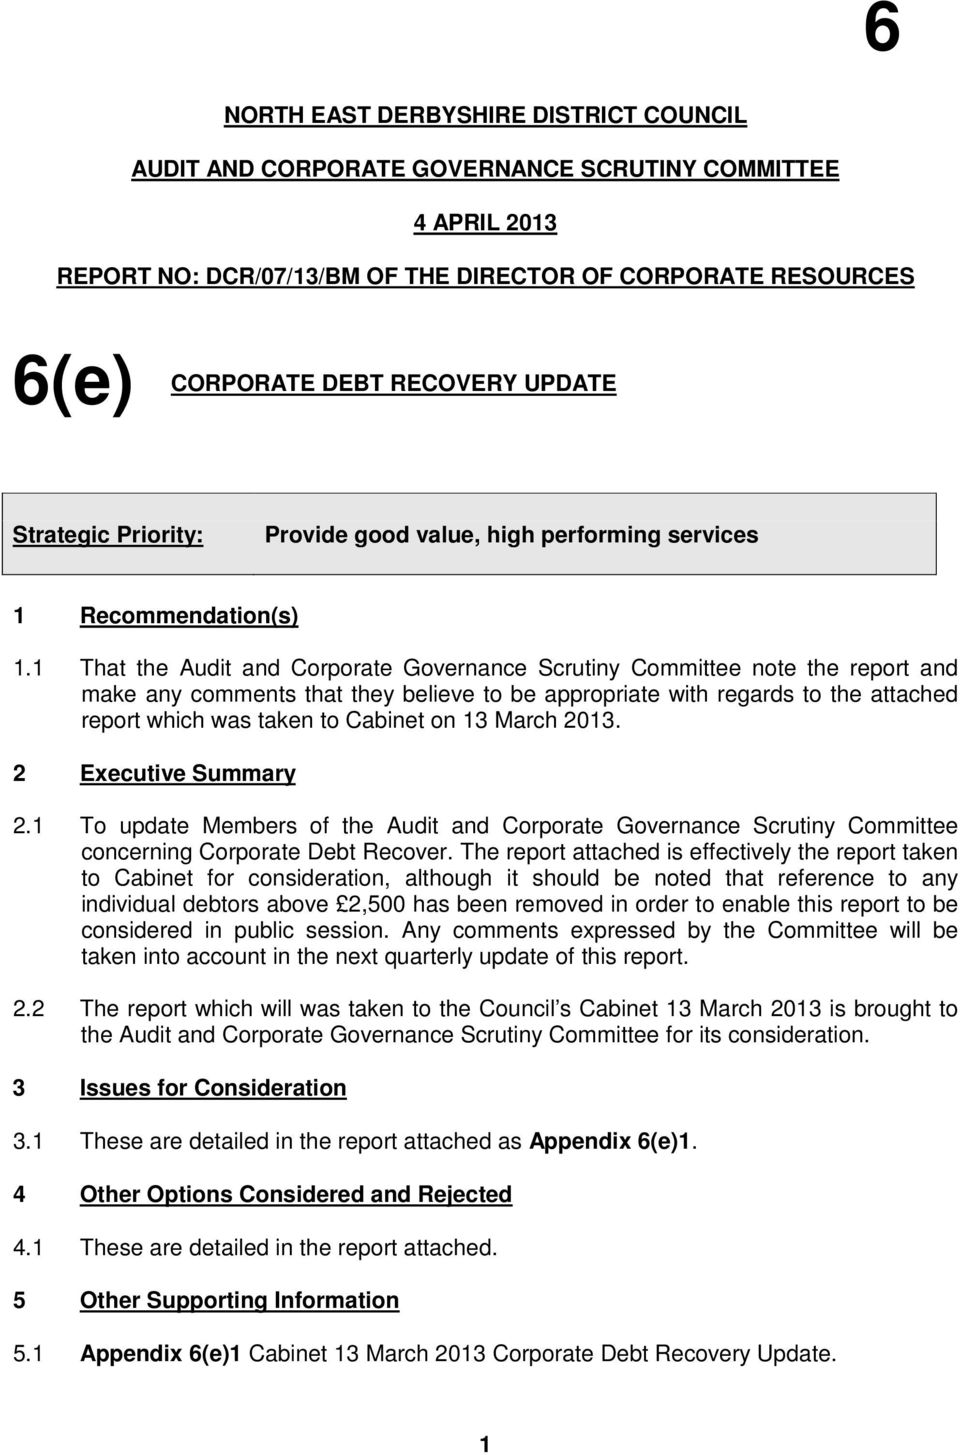 1 That the Audit and Corporate Governance Scrutiny Committee note the report and make any comments that they believe to be appropriate with regards to the attached report which was taken to Cabinet